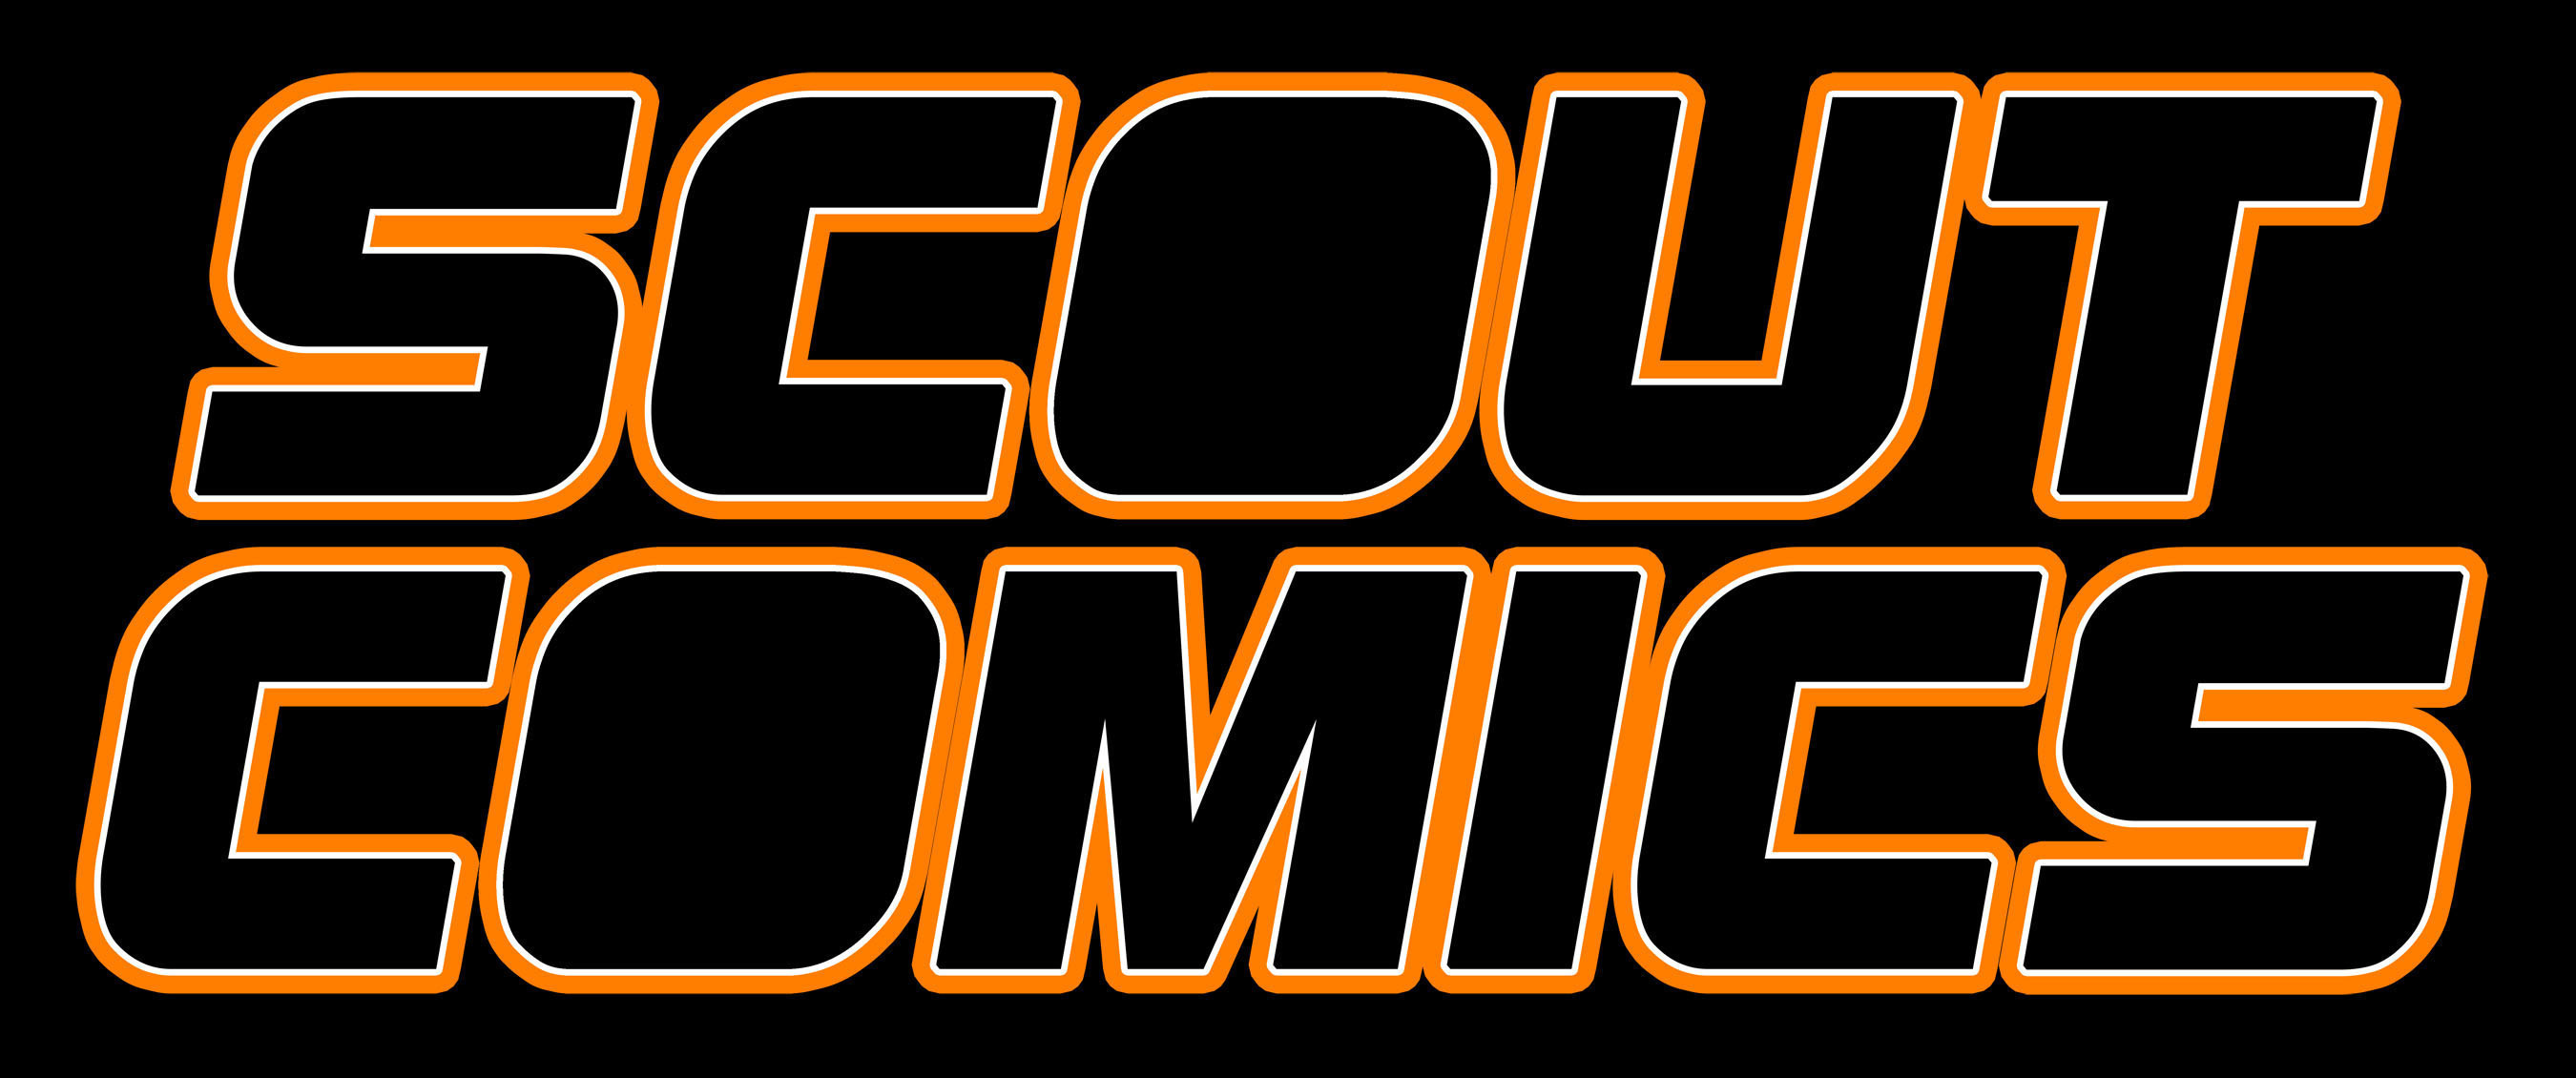 OK, INC. AND SCOUT COMICS TO LAUNCH SOLARMAN IN SUMMER 2015